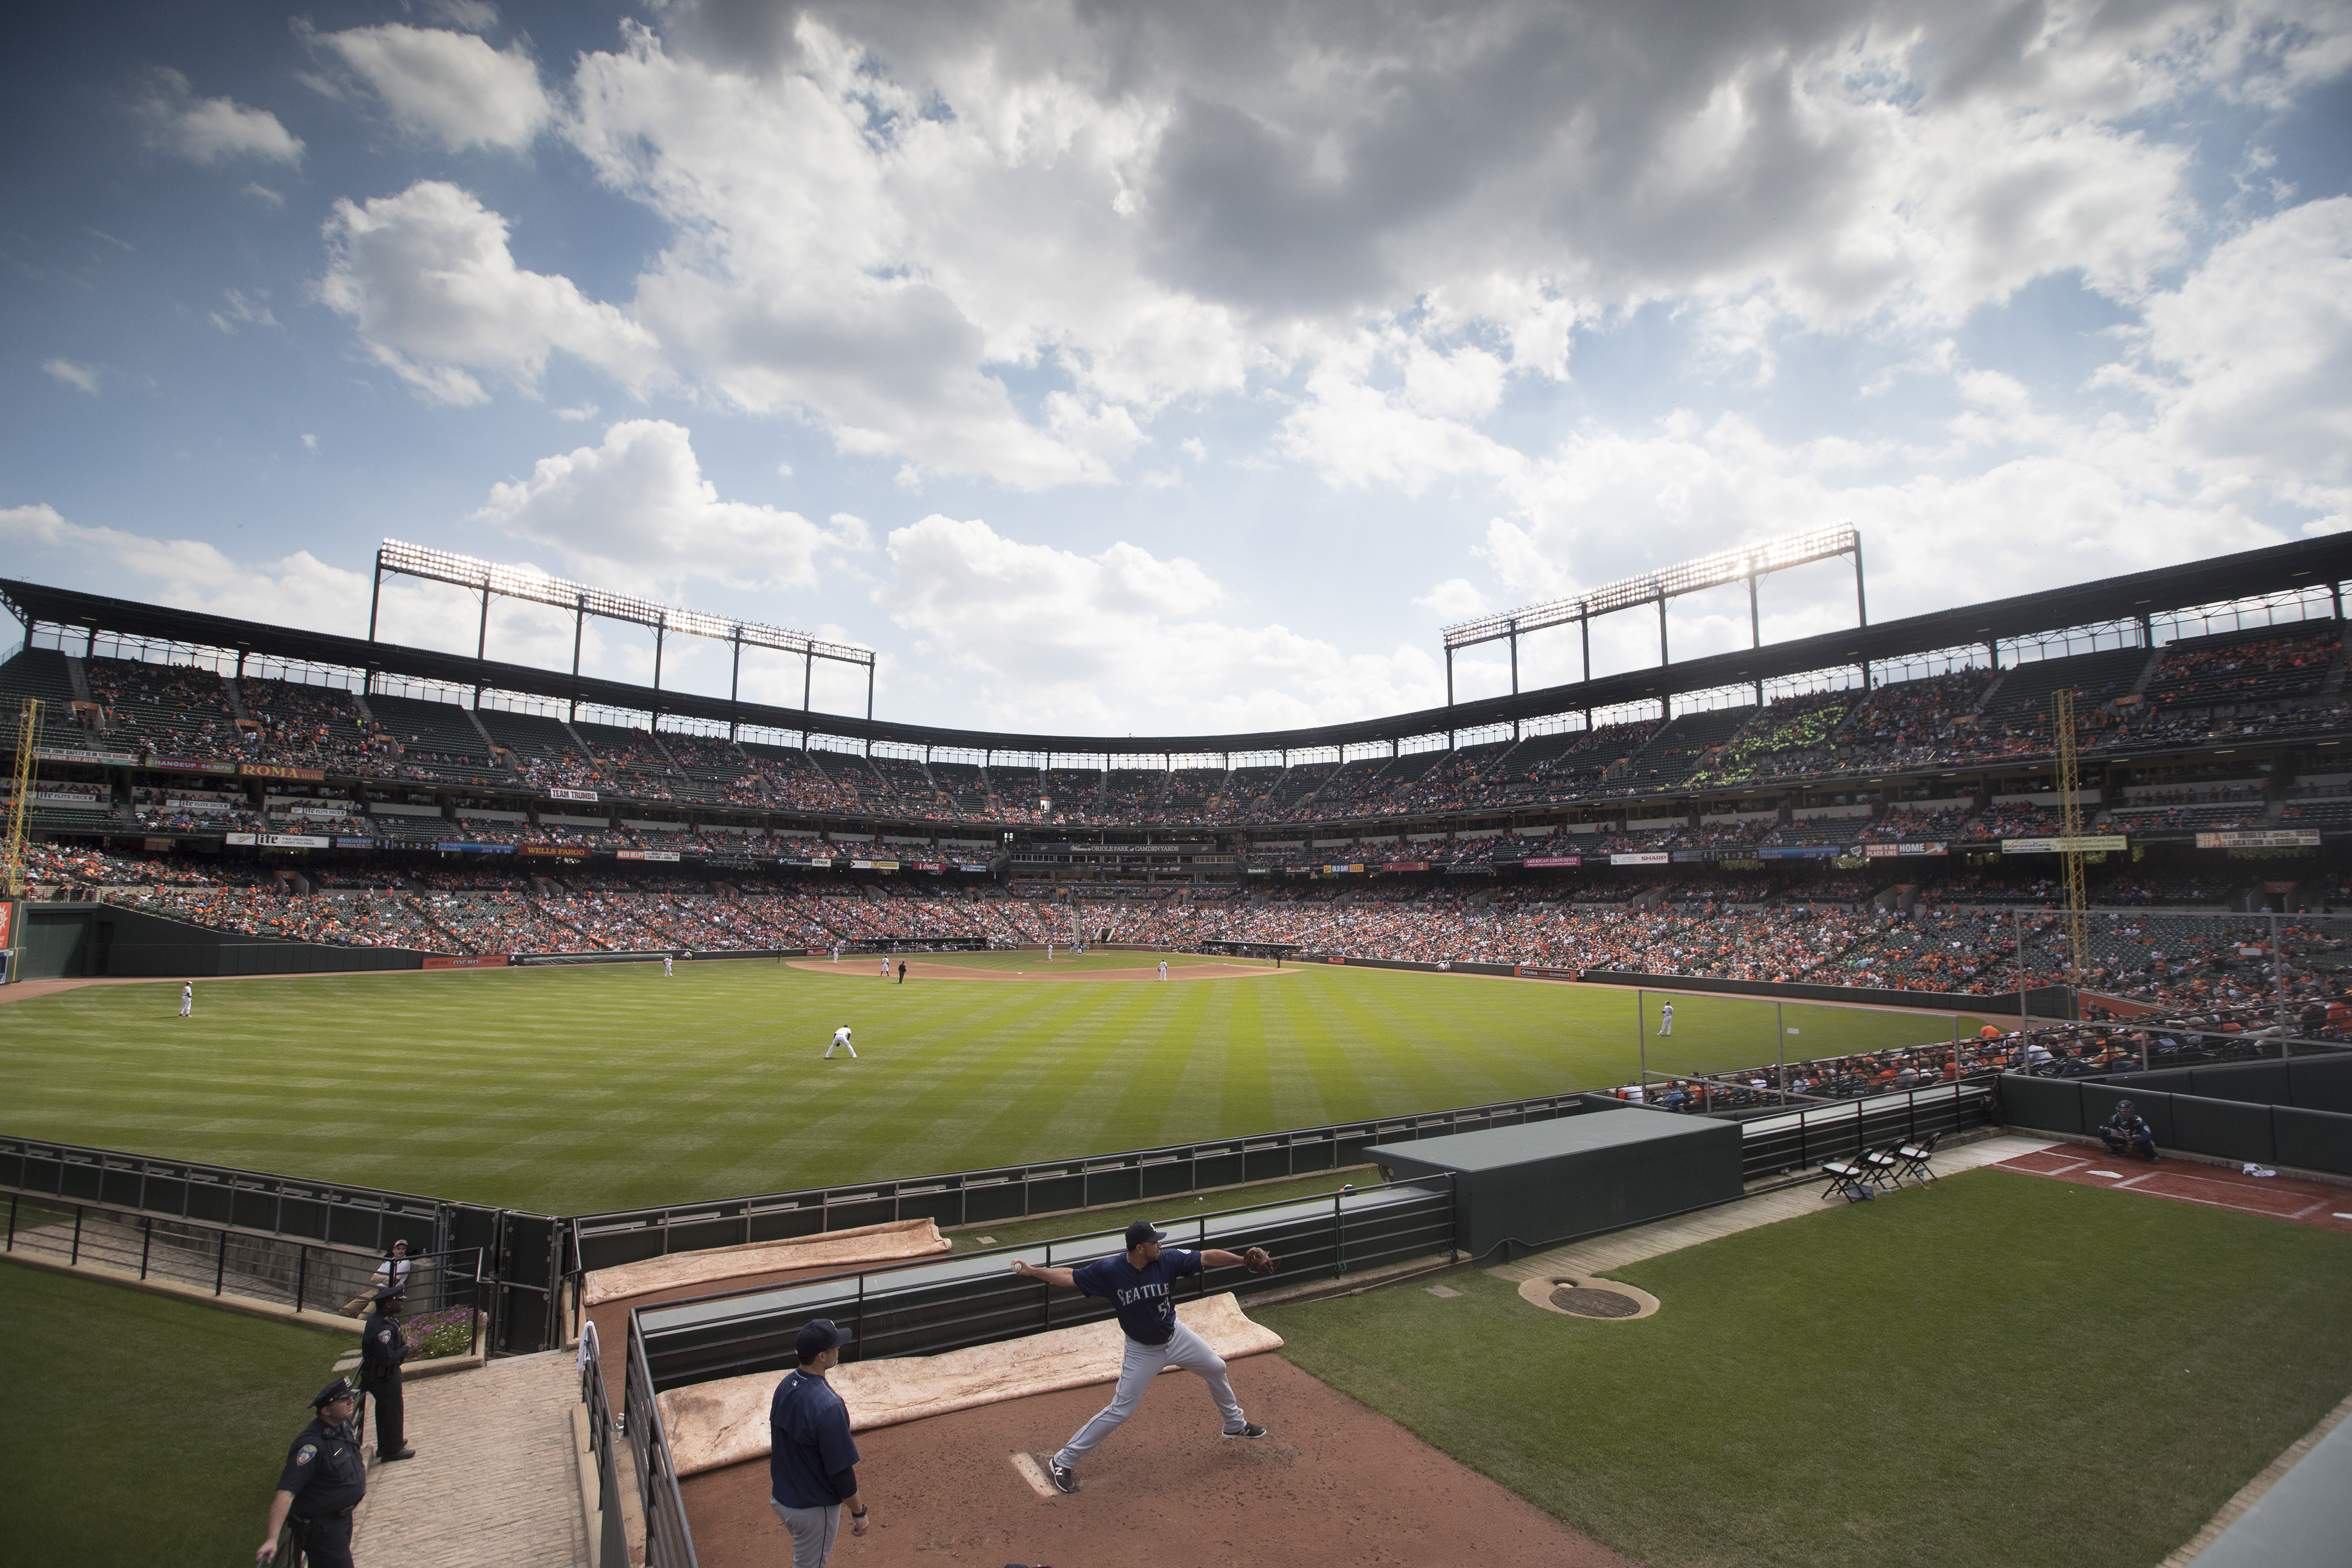 Baltimore Orioles vs Seattle Mariners